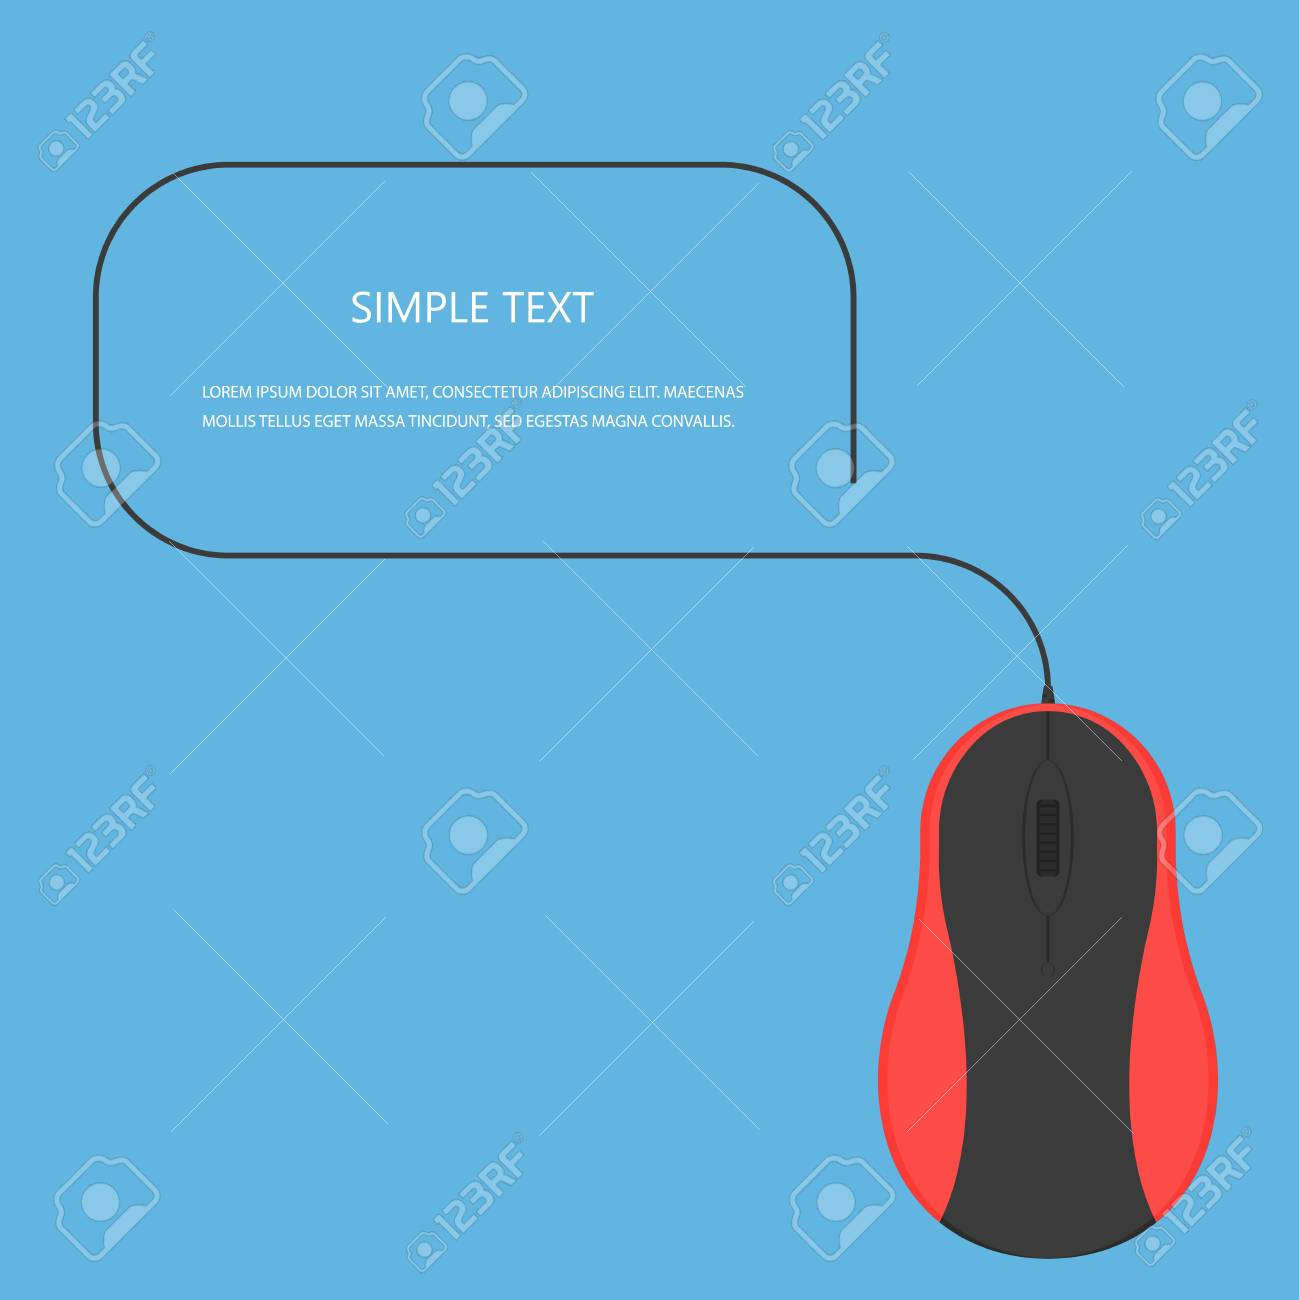 Mouse Vector Conceptcomputer In Modern Flat Style Office Computer Diagram Part This Technique On Background